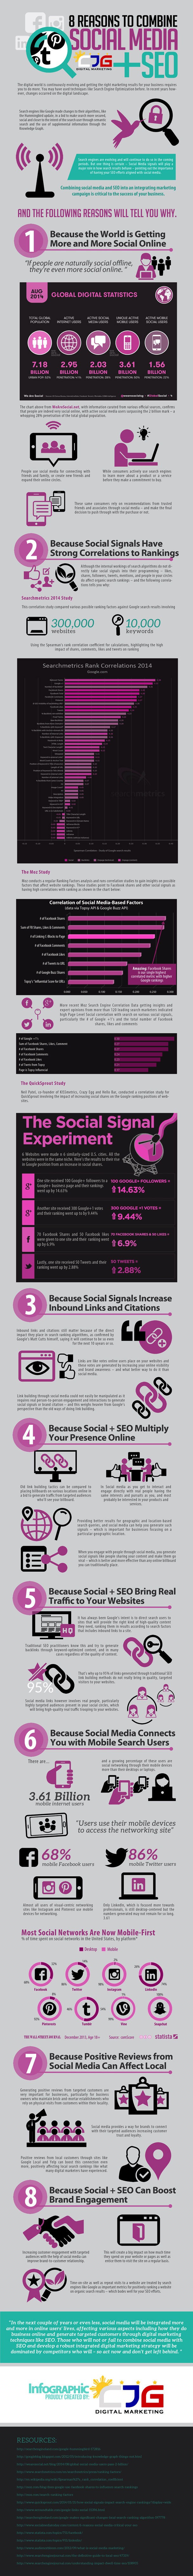 8 Reasons to Combine Social Media and SEO (Infographic) - An Infographic from CJG Digital Marketing